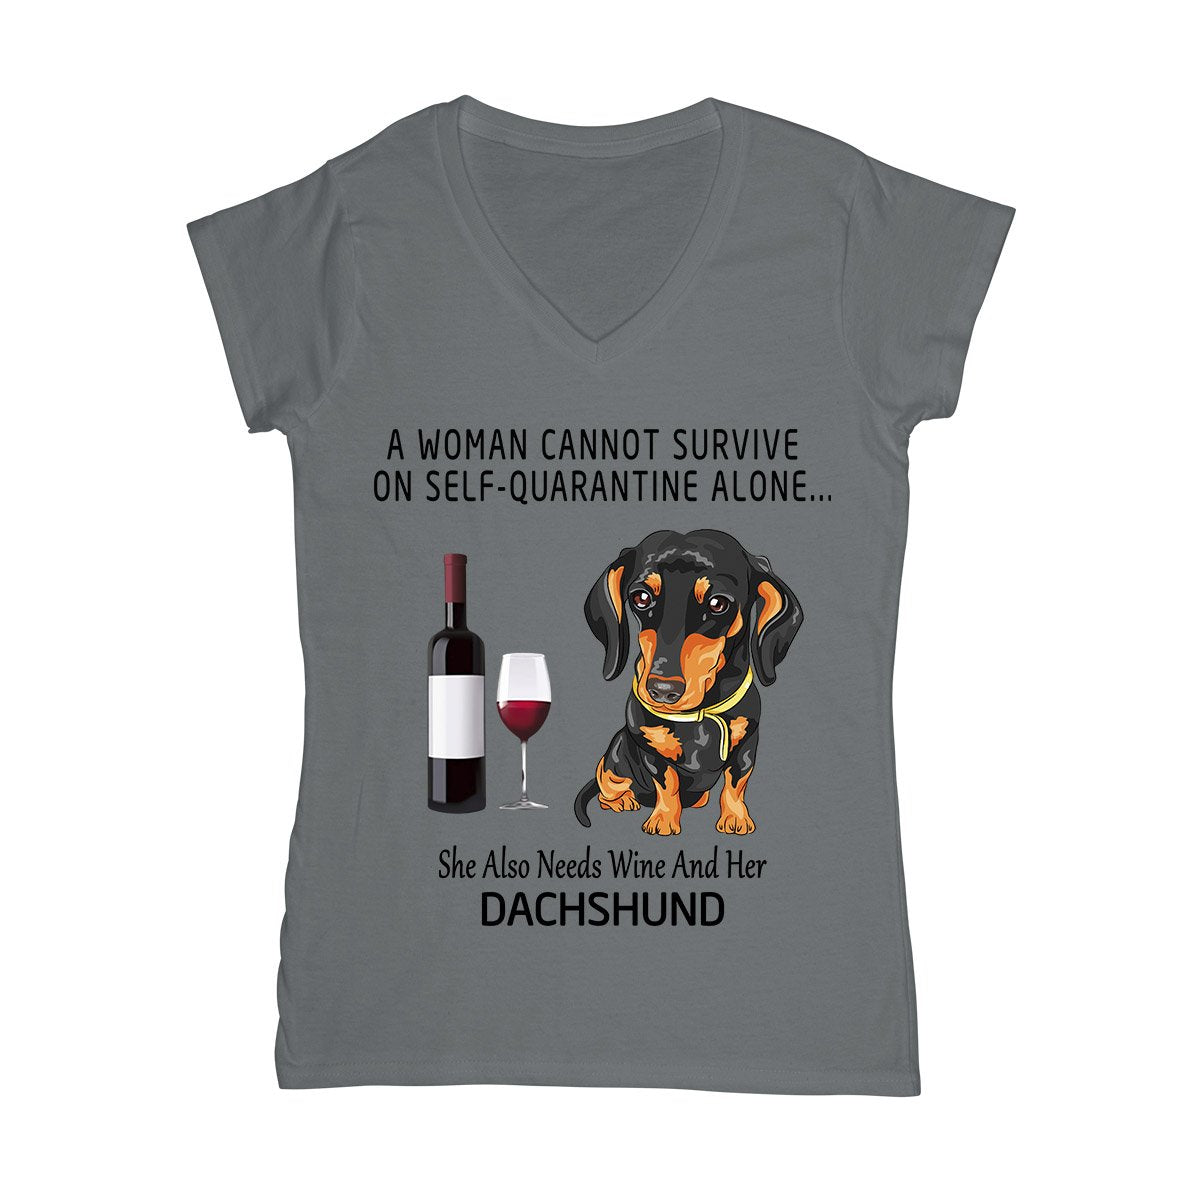 A Woman Also Needs Wine And Dachshund EZ06 0604 Women V-neck T-shirt